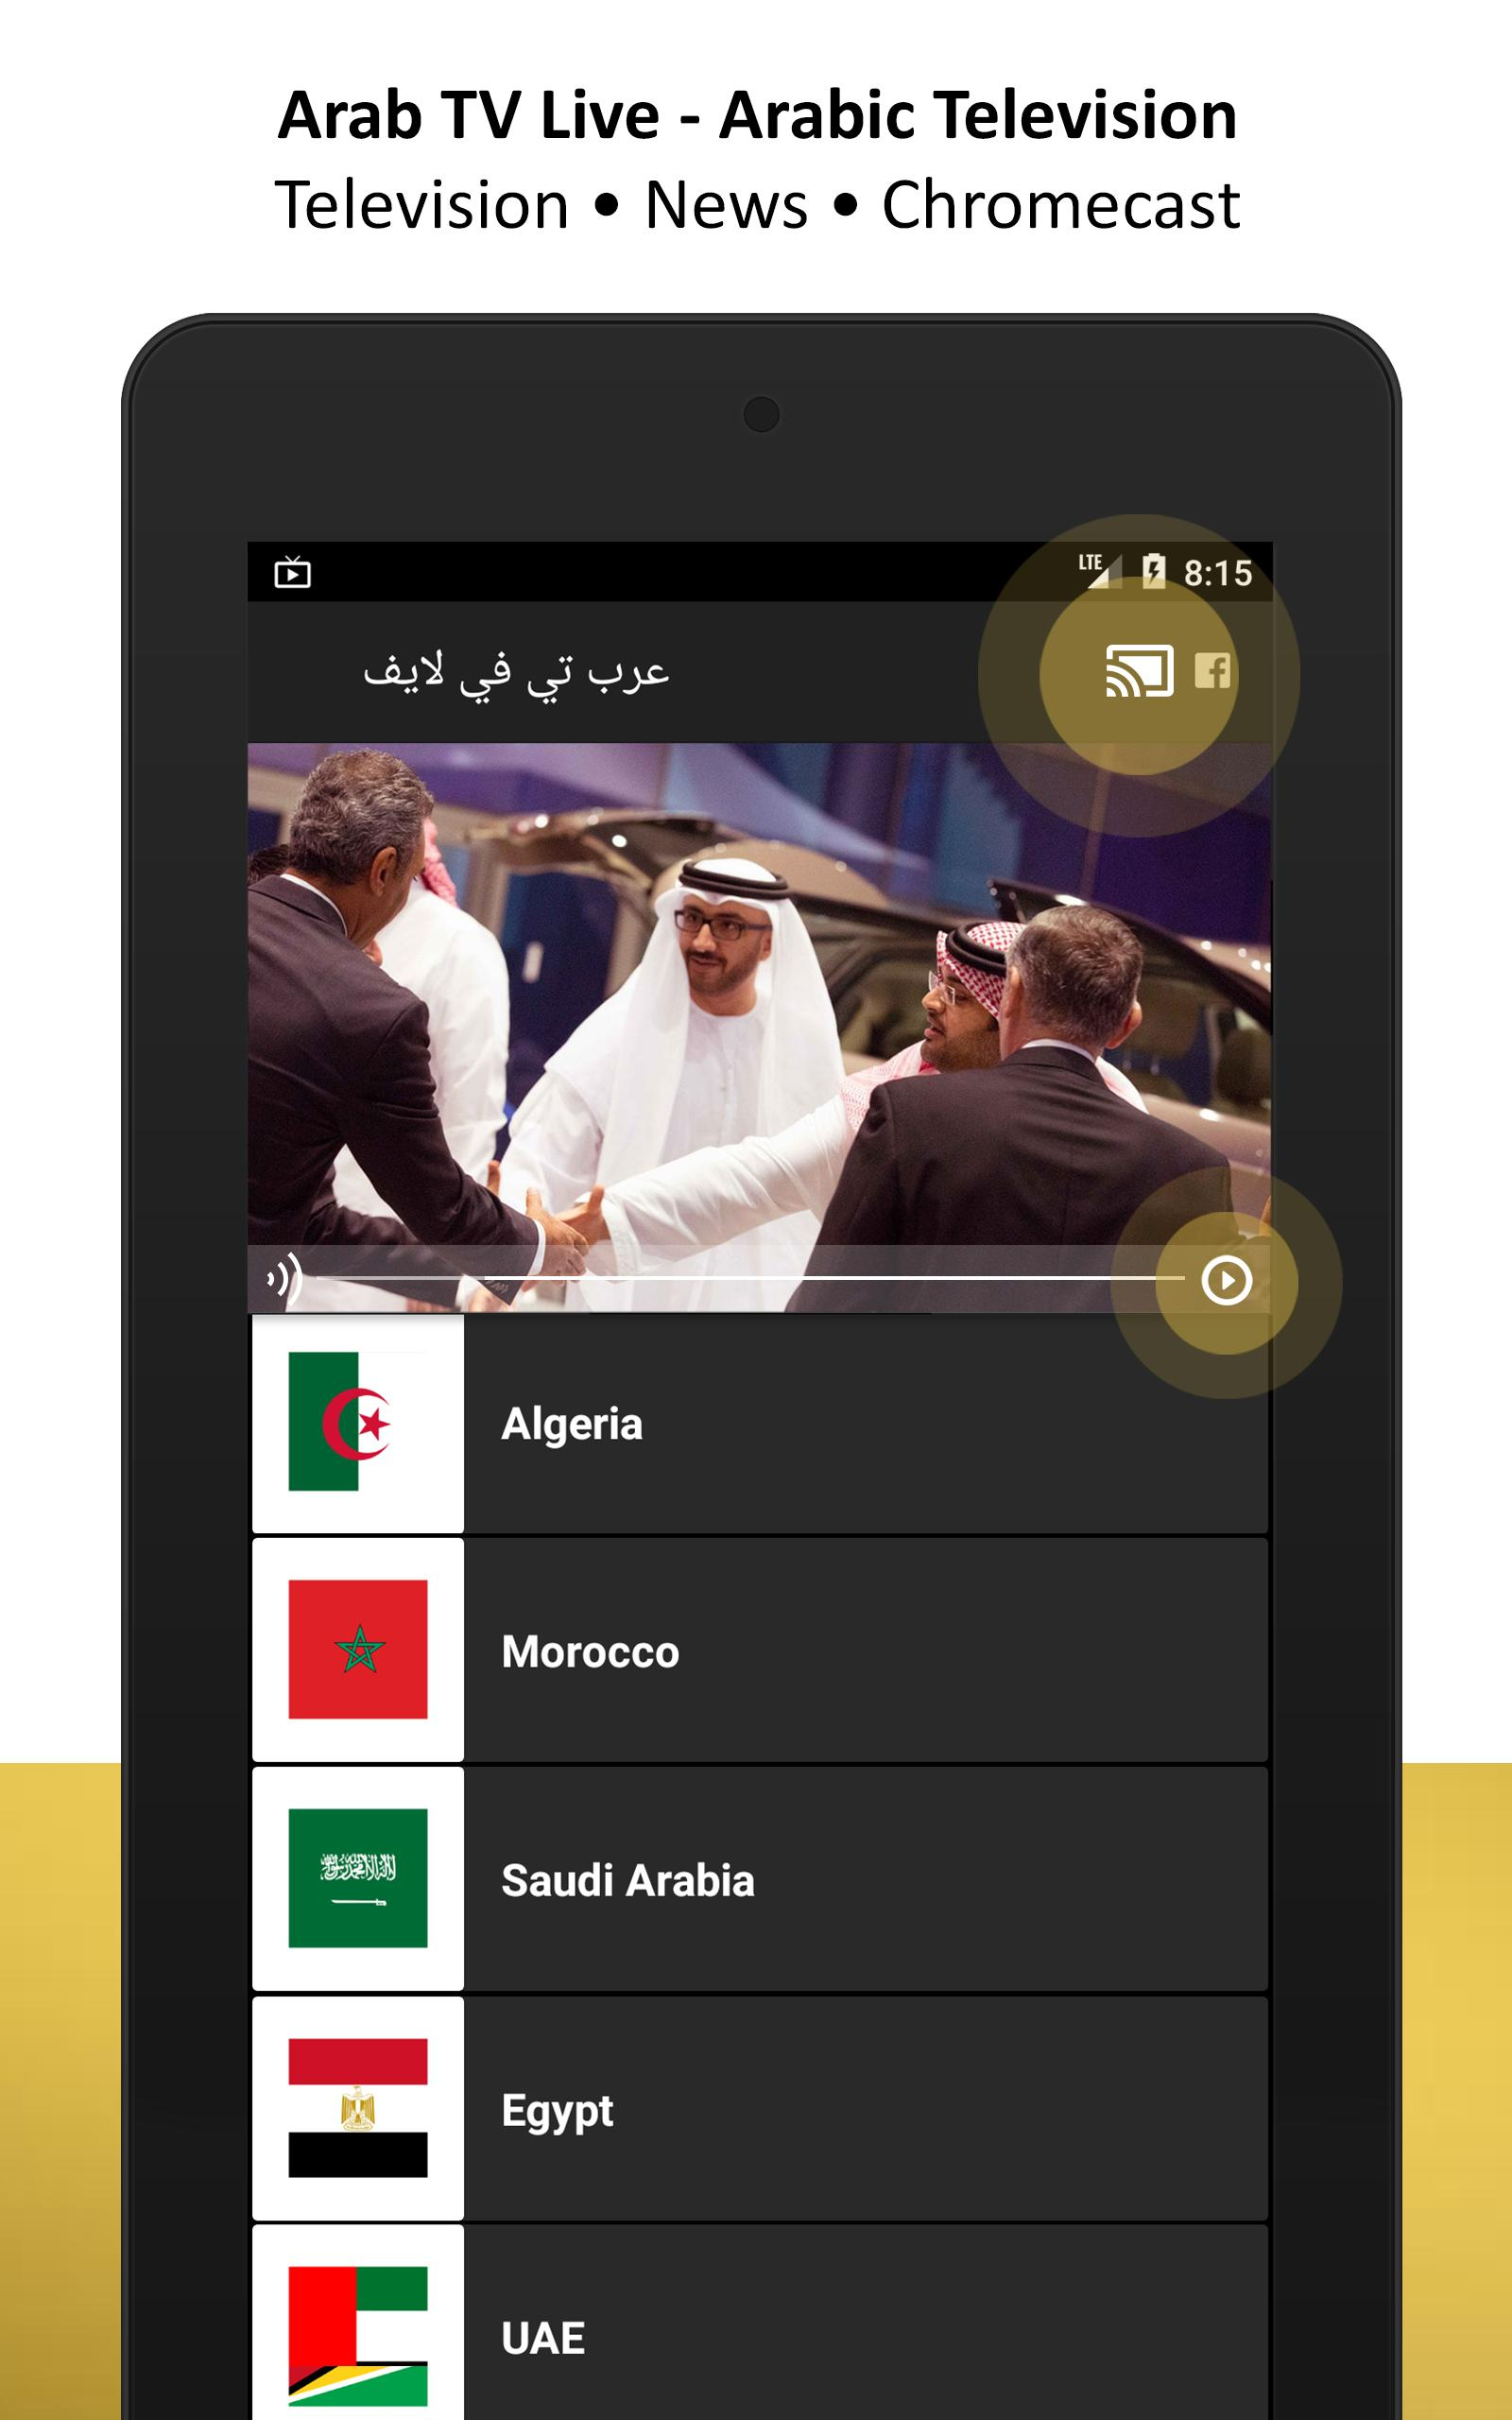 Arab TV Live - Arabic Television for Android - APK Download